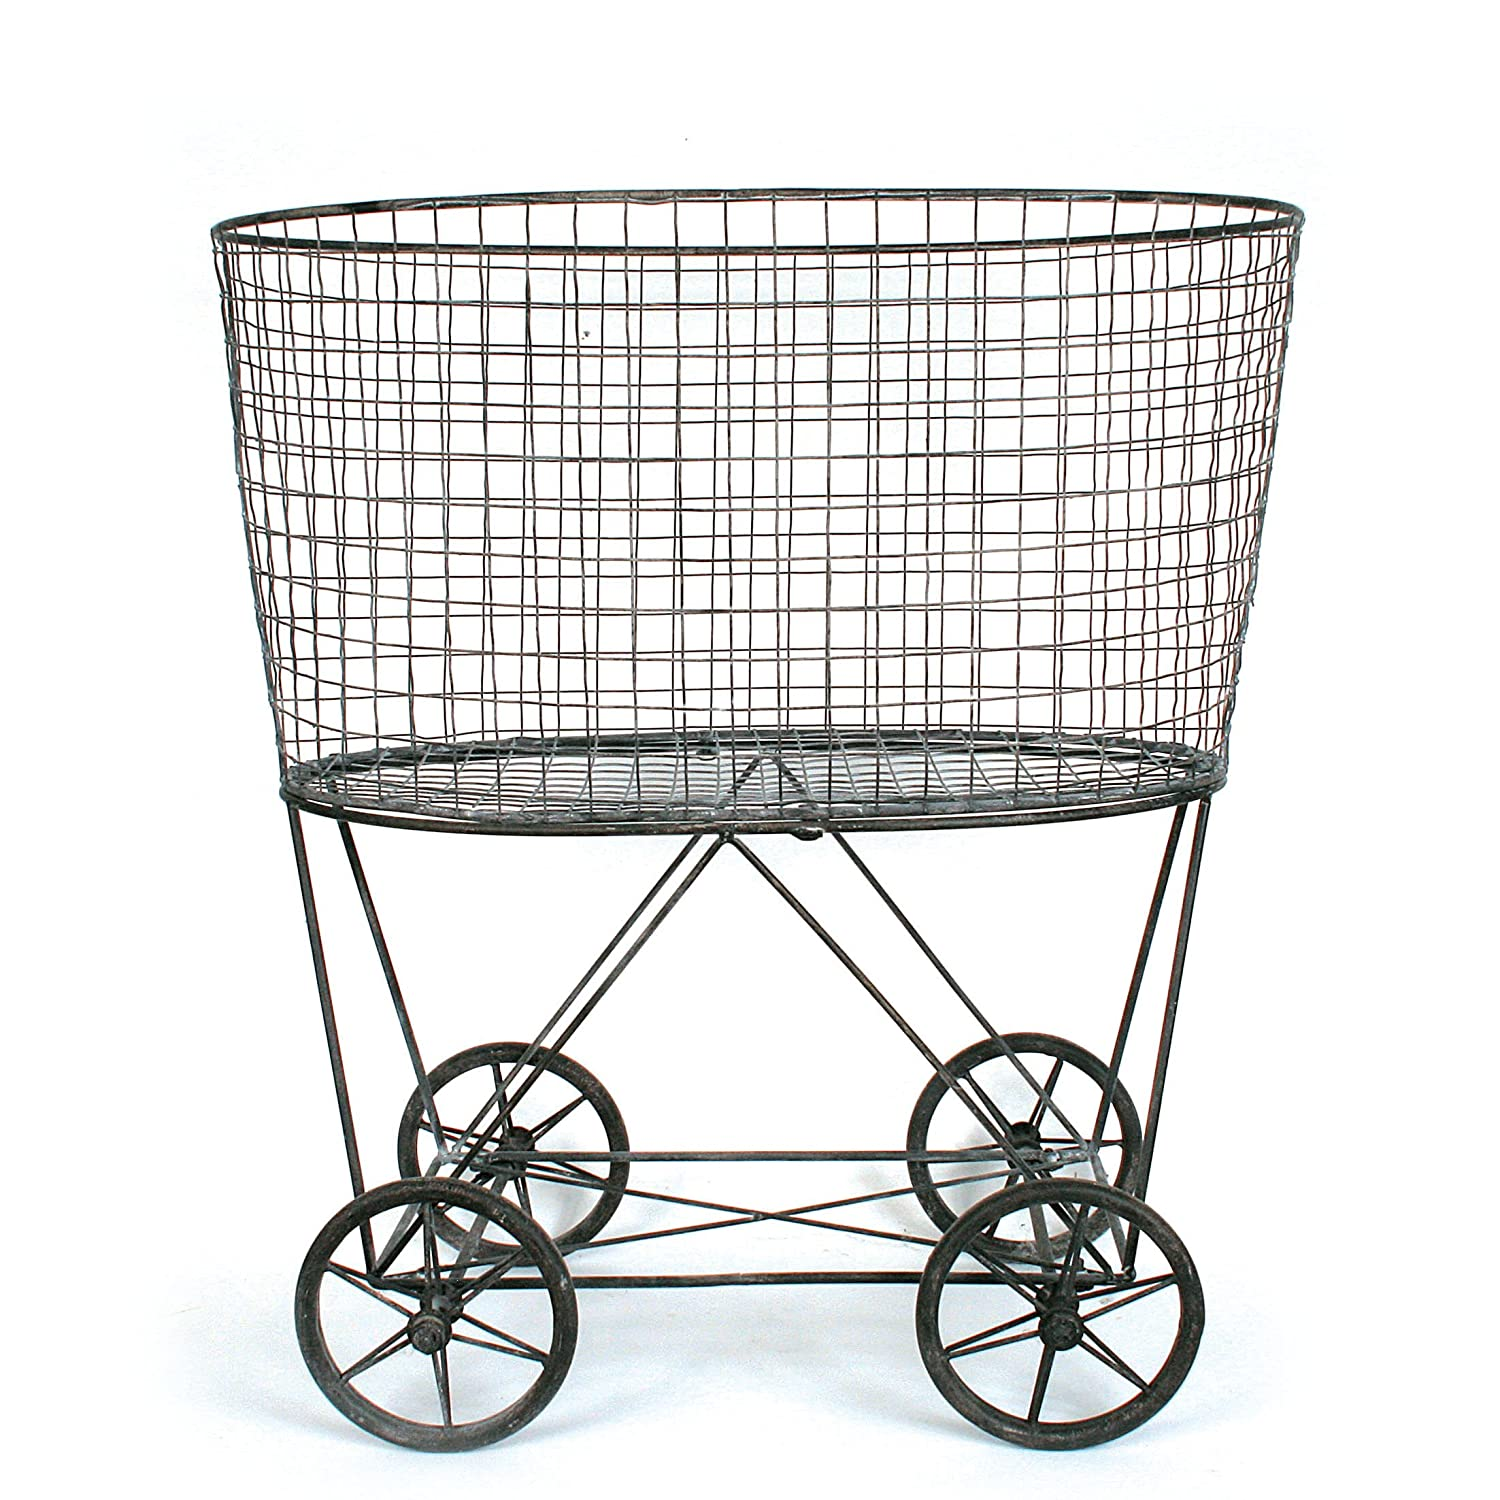 Vintage style metal laundry basket with wheels - perfect for a French country or European farmhouse room.